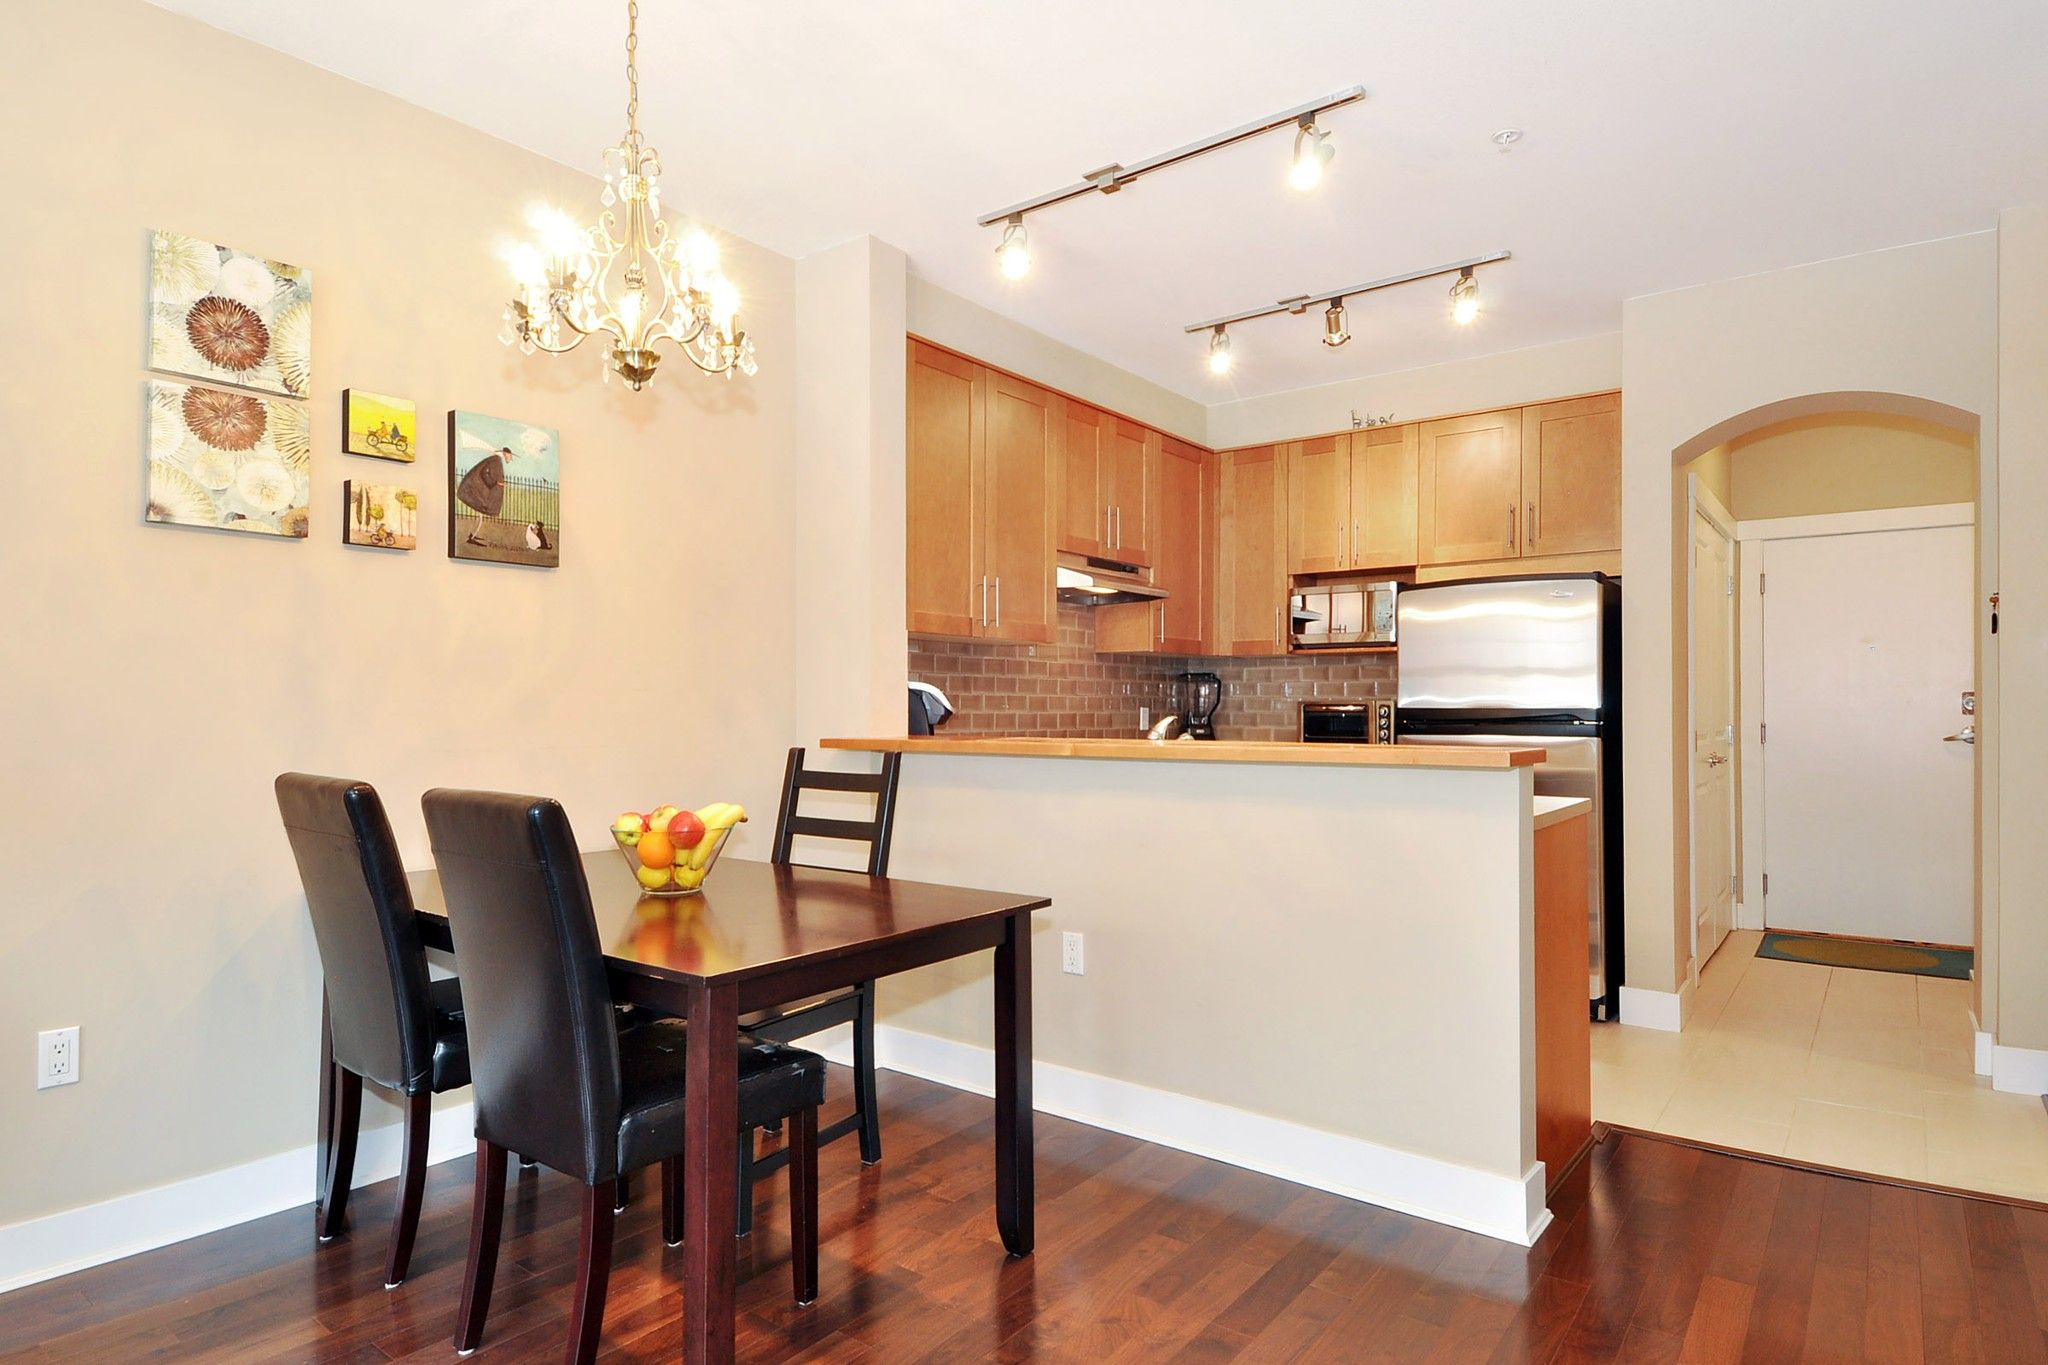 """Photo 4: Photos: 222 2083 W 33RD Avenue in Vancouver: Quilchena Condo for sale in """"DEVONSHIRE HOUSE"""" (Vancouver West)  : MLS®# R2341234"""